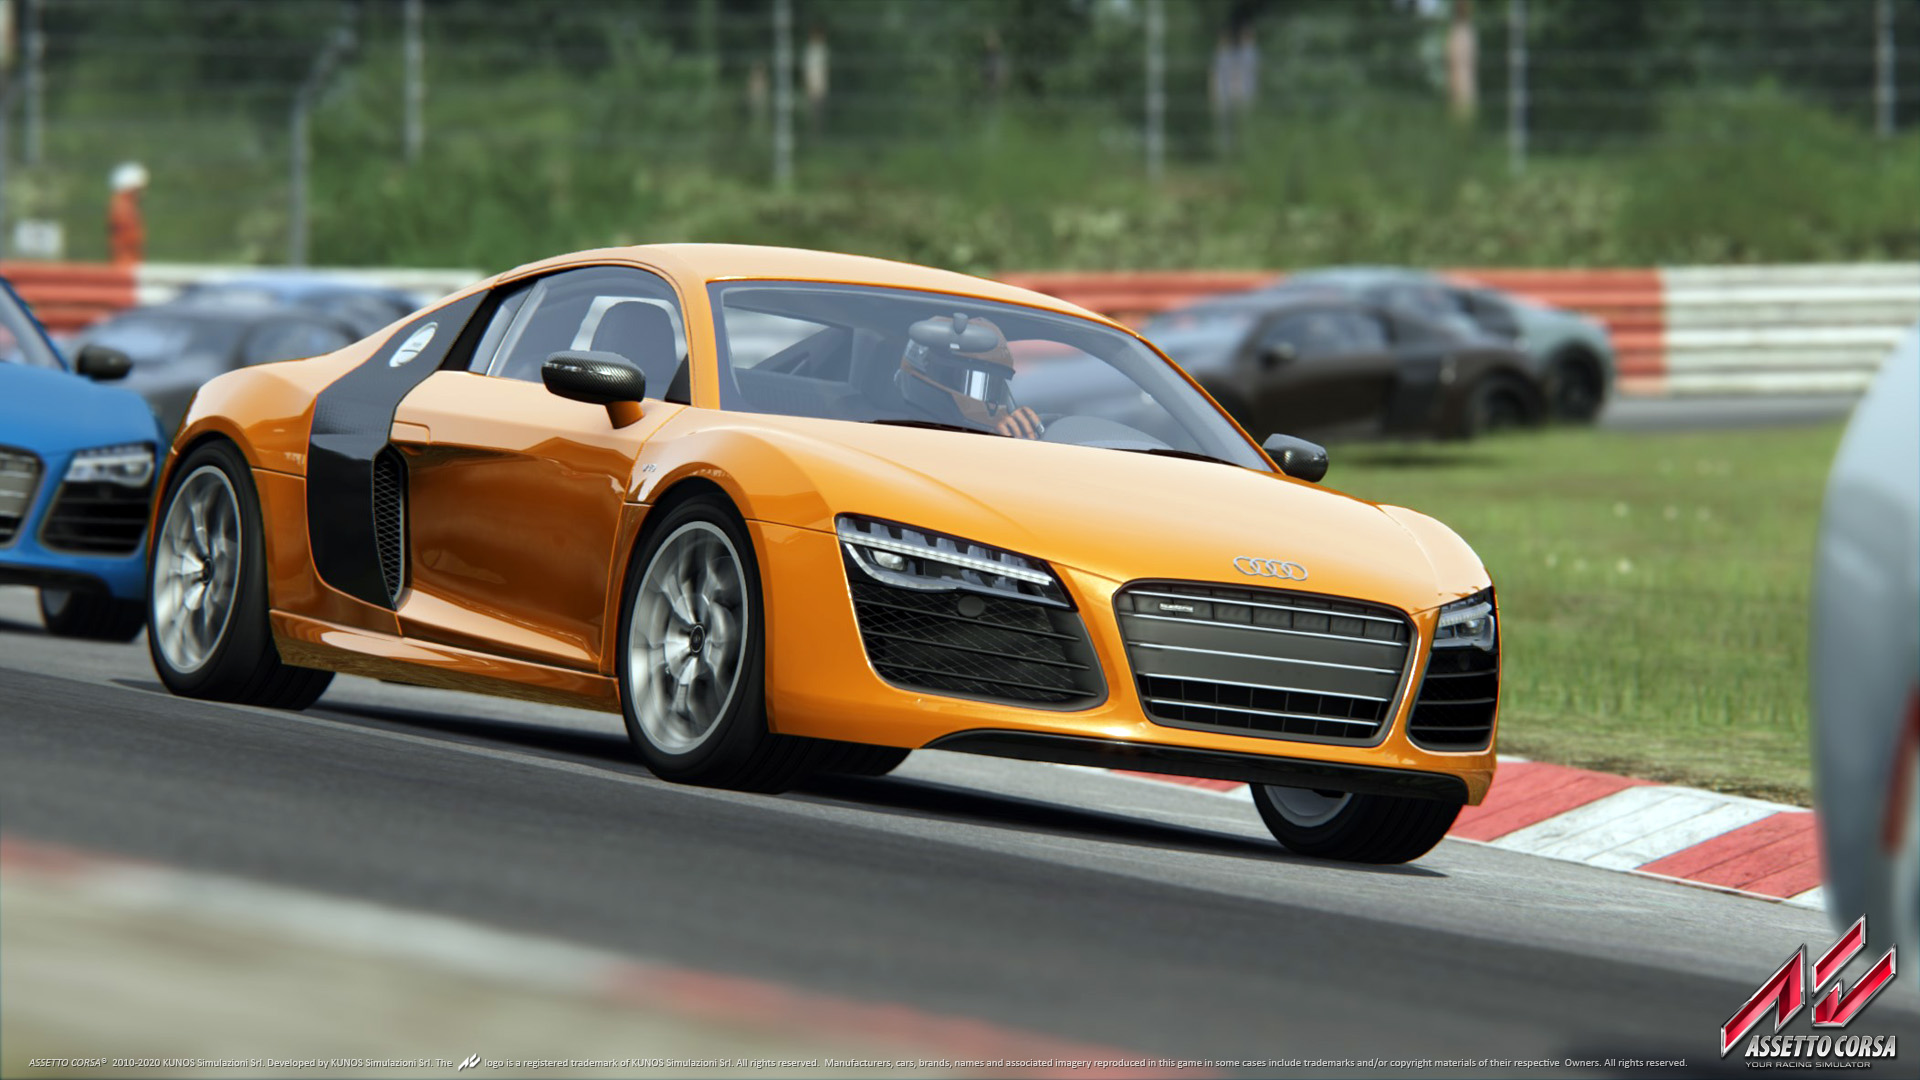 Assetto Corsa Screenshot 3